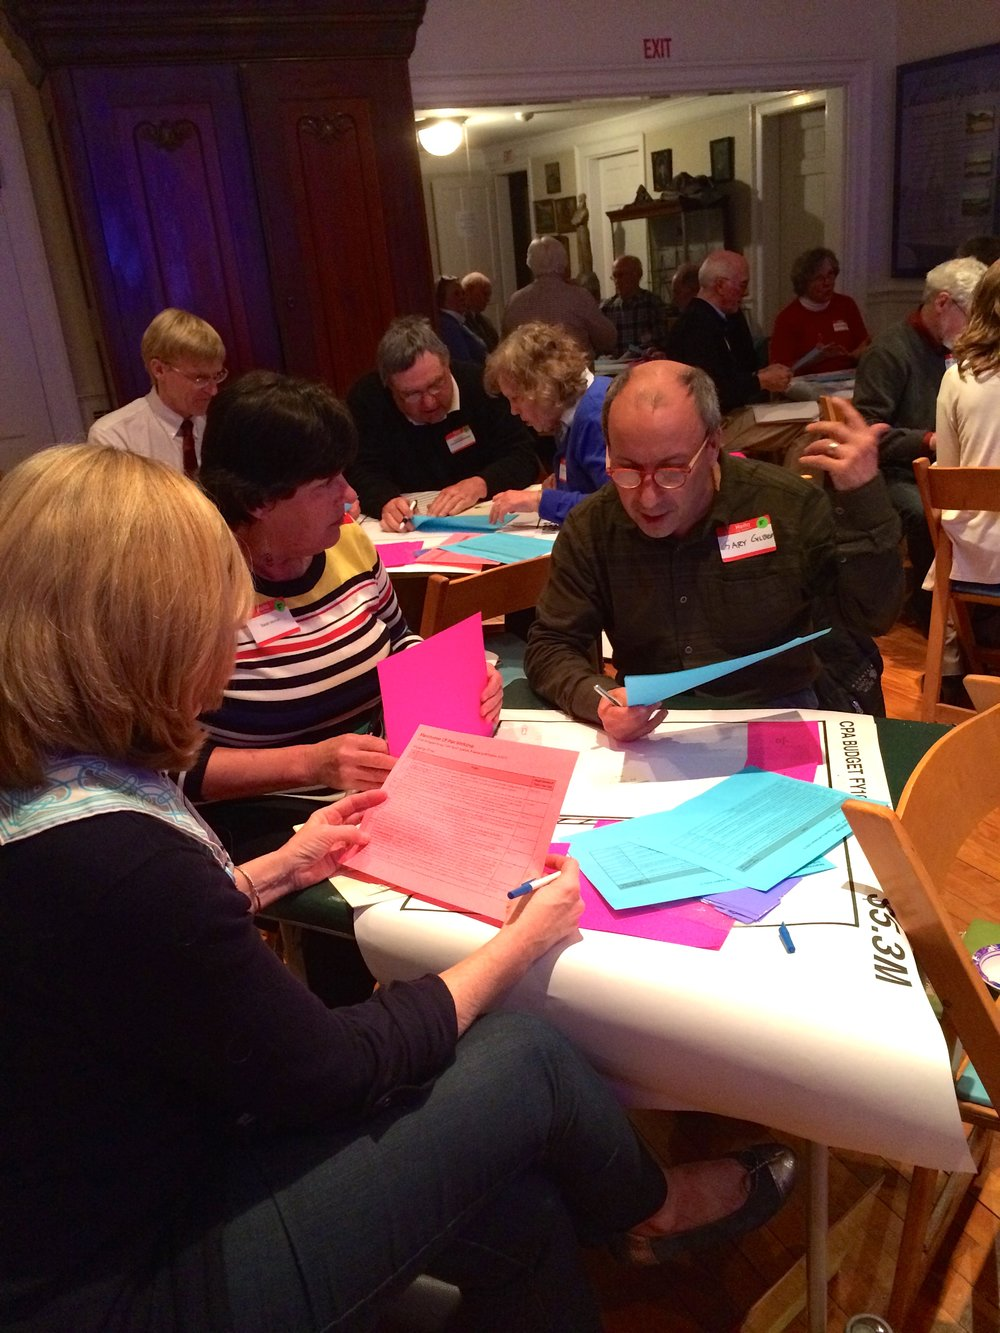 Community members working on JM Goldson's CPA Tetris exercise at the Manchester by the Sea workshop, April 13, 205